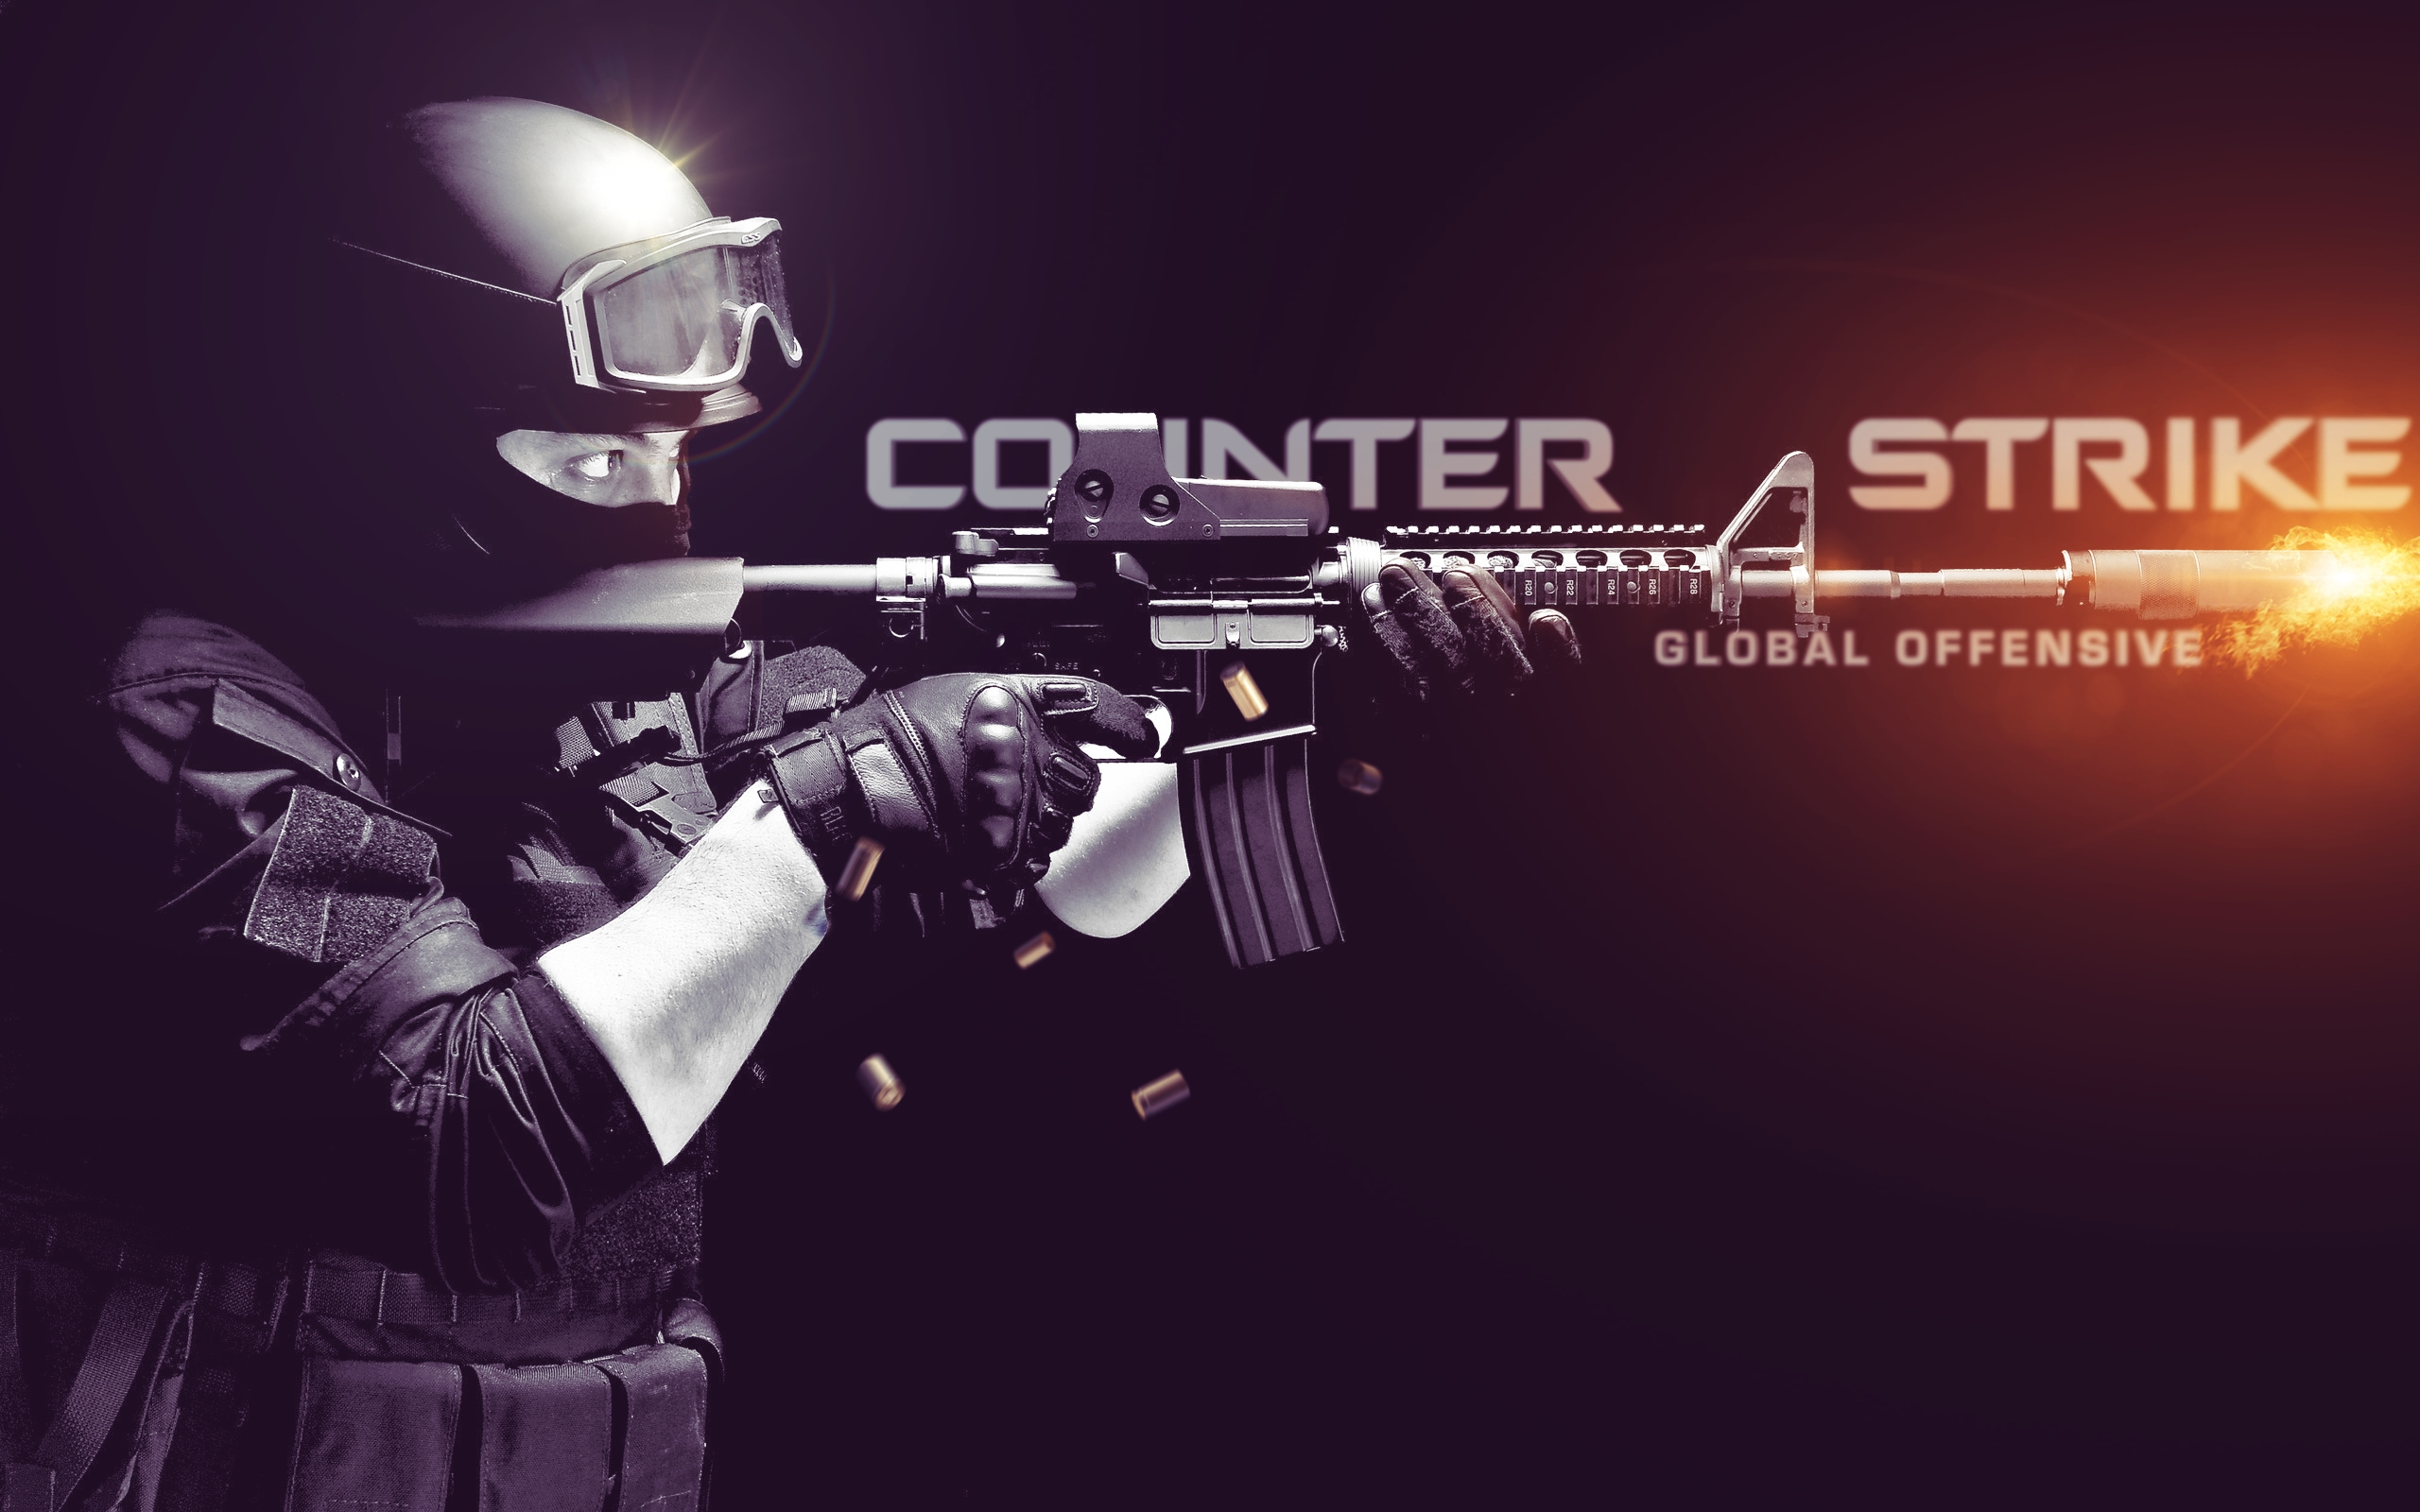 10 New Counter Strike Desktop Wallpapers FULL HD 1080p For PC Background